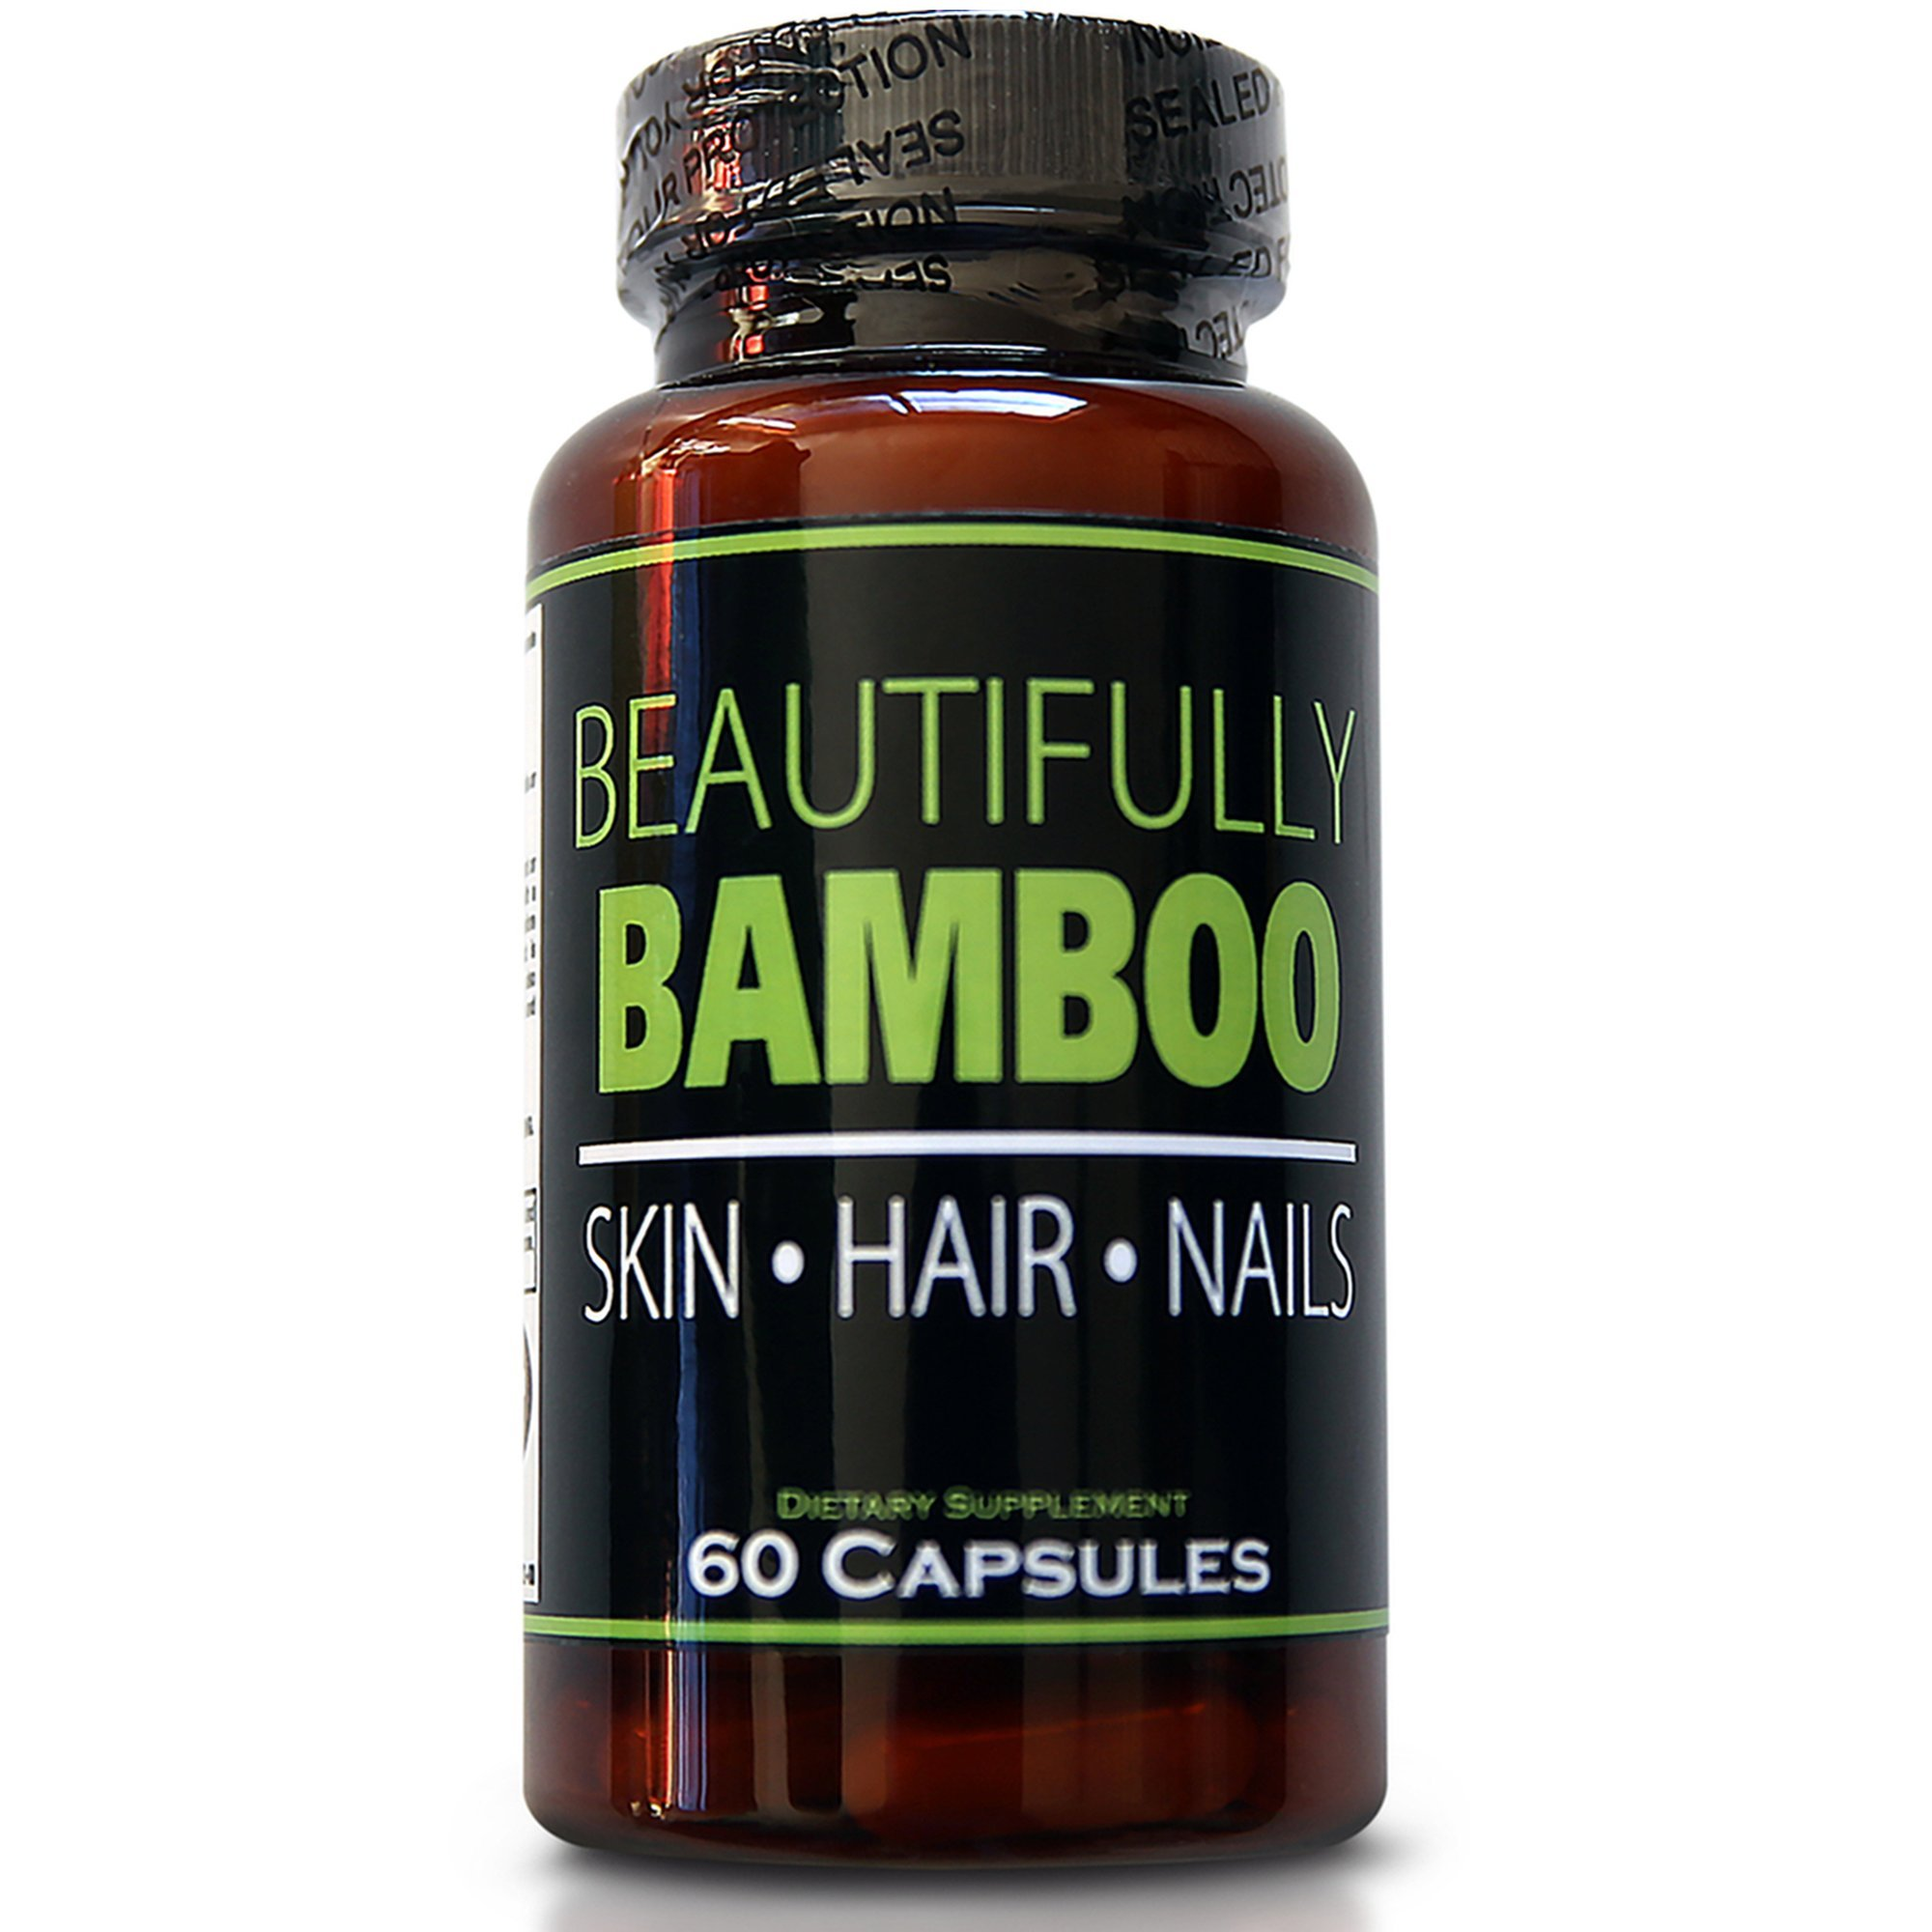 Beautifully Bamboo Ultra Vitamin for Skin, Hair, and Nail Growth. Enriched with Biotin, Bamboo Silica, Amino Acids and more (60 capsules) by Beautifully Bamboo (Image #1)